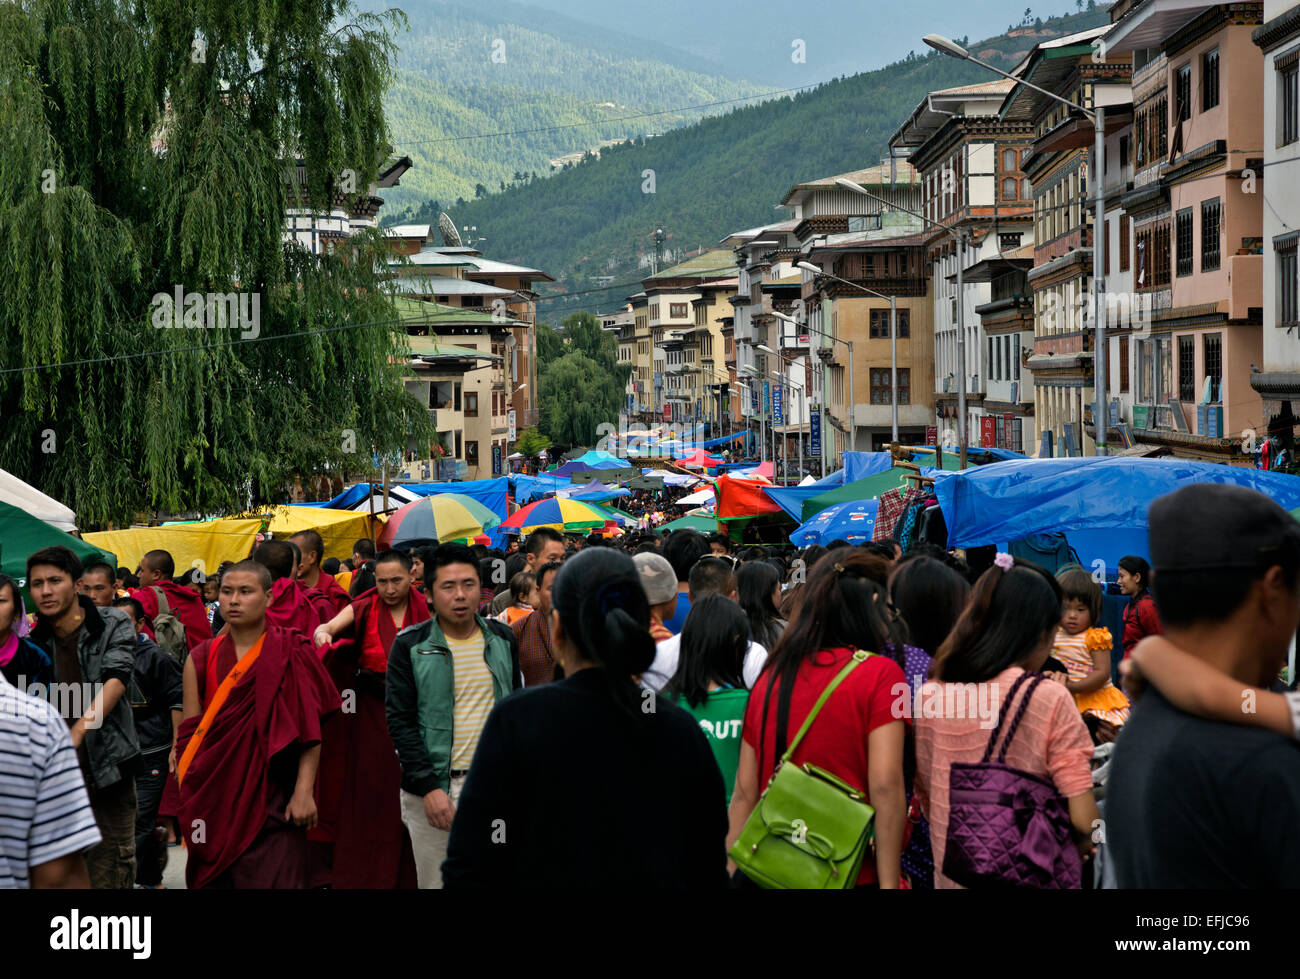 BHUTAN -  Special festival market during the annual Thimphu Tsechu (festival) draws a huge crowd of local people - Stock Image